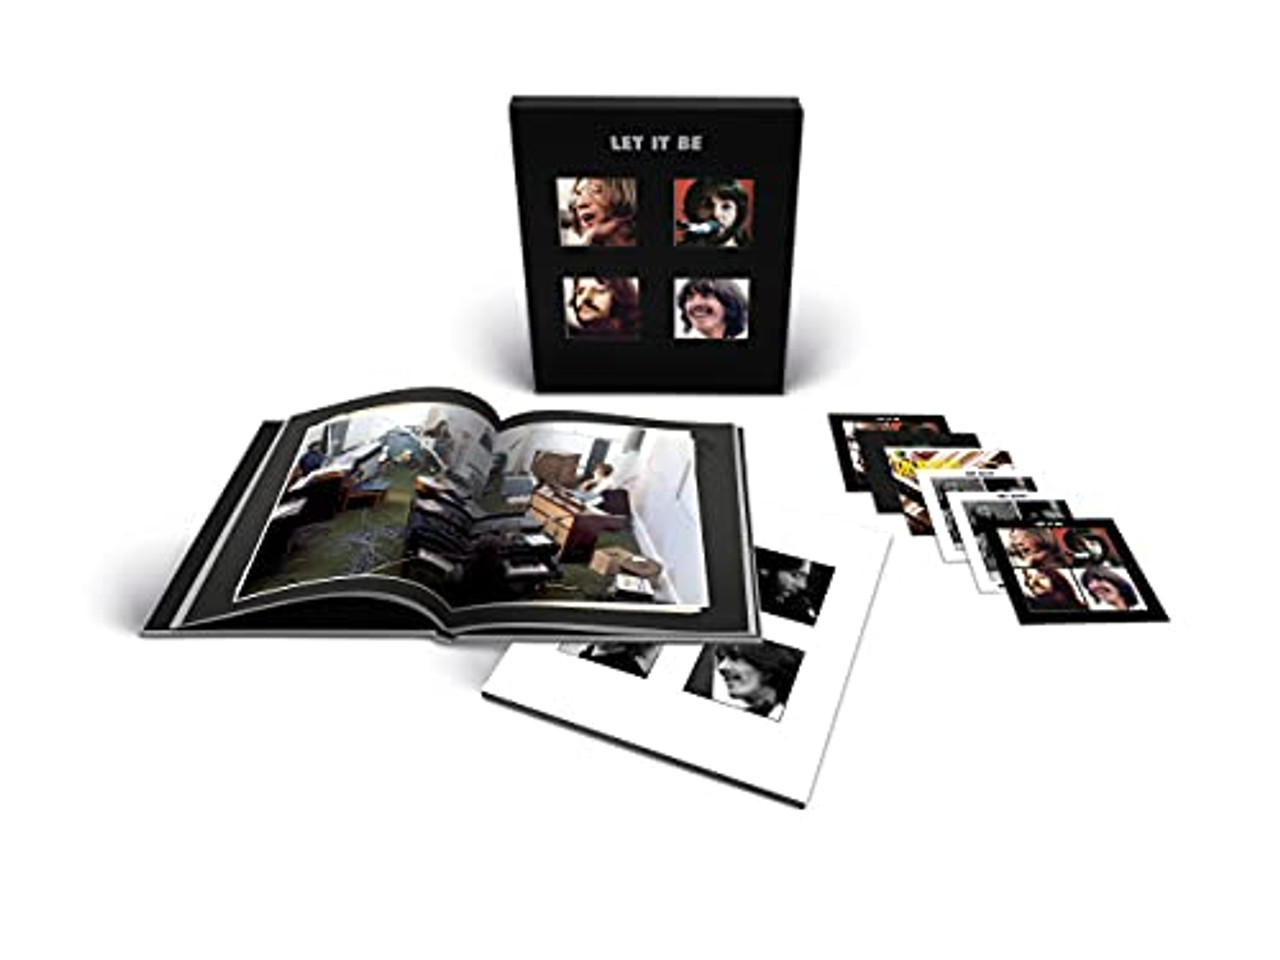 Beatles Let It Be Special Edition Super Deluxe CD